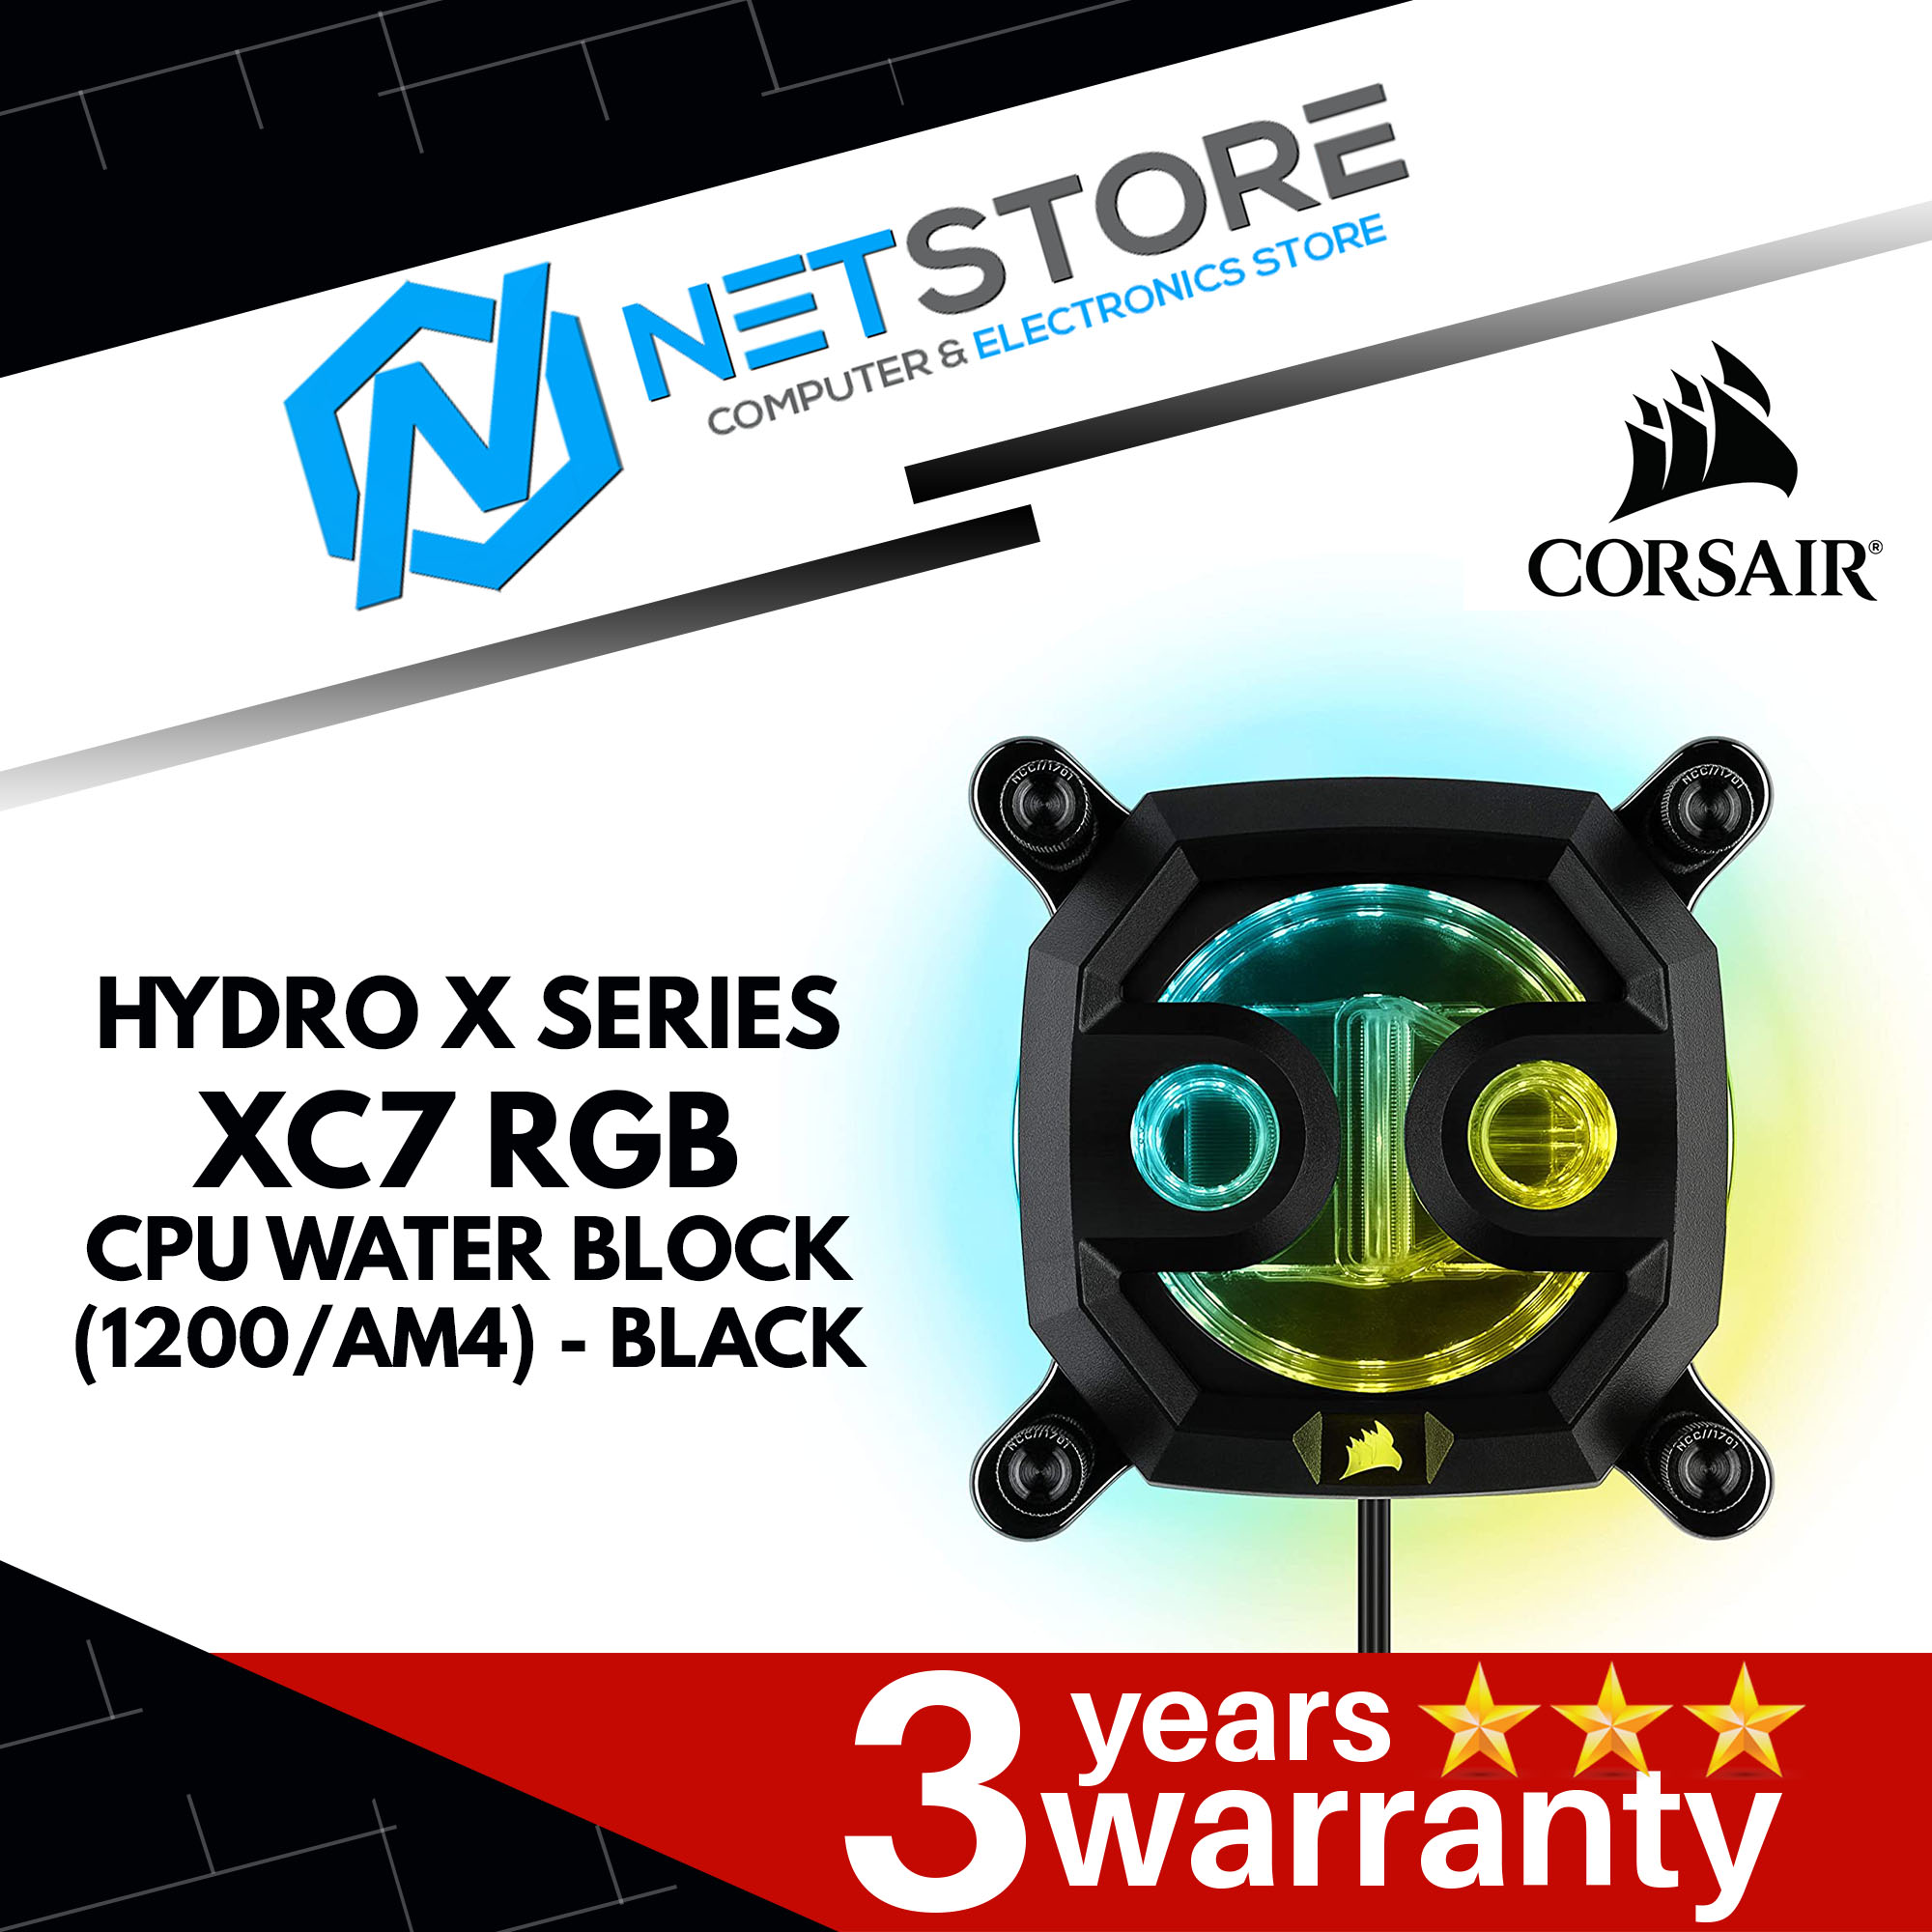 CORSAIR HYDRO X SERIES XC7 RGB CPU WATERBLOCK (1200/AM4) - BLACK